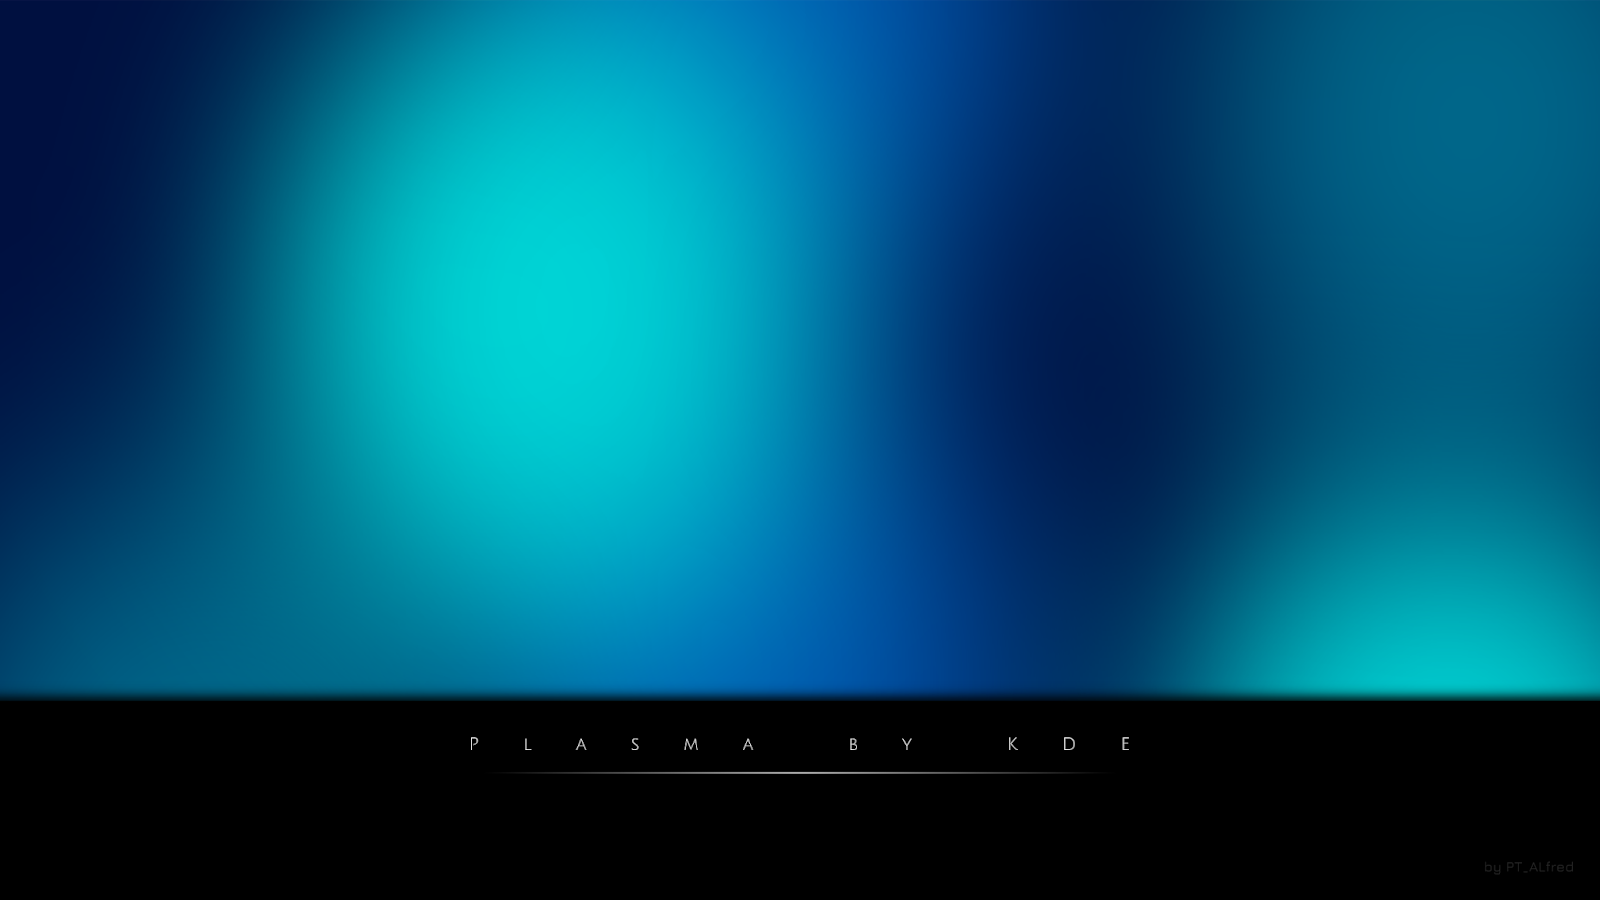 KDE Plasma In Blue Wallpaper